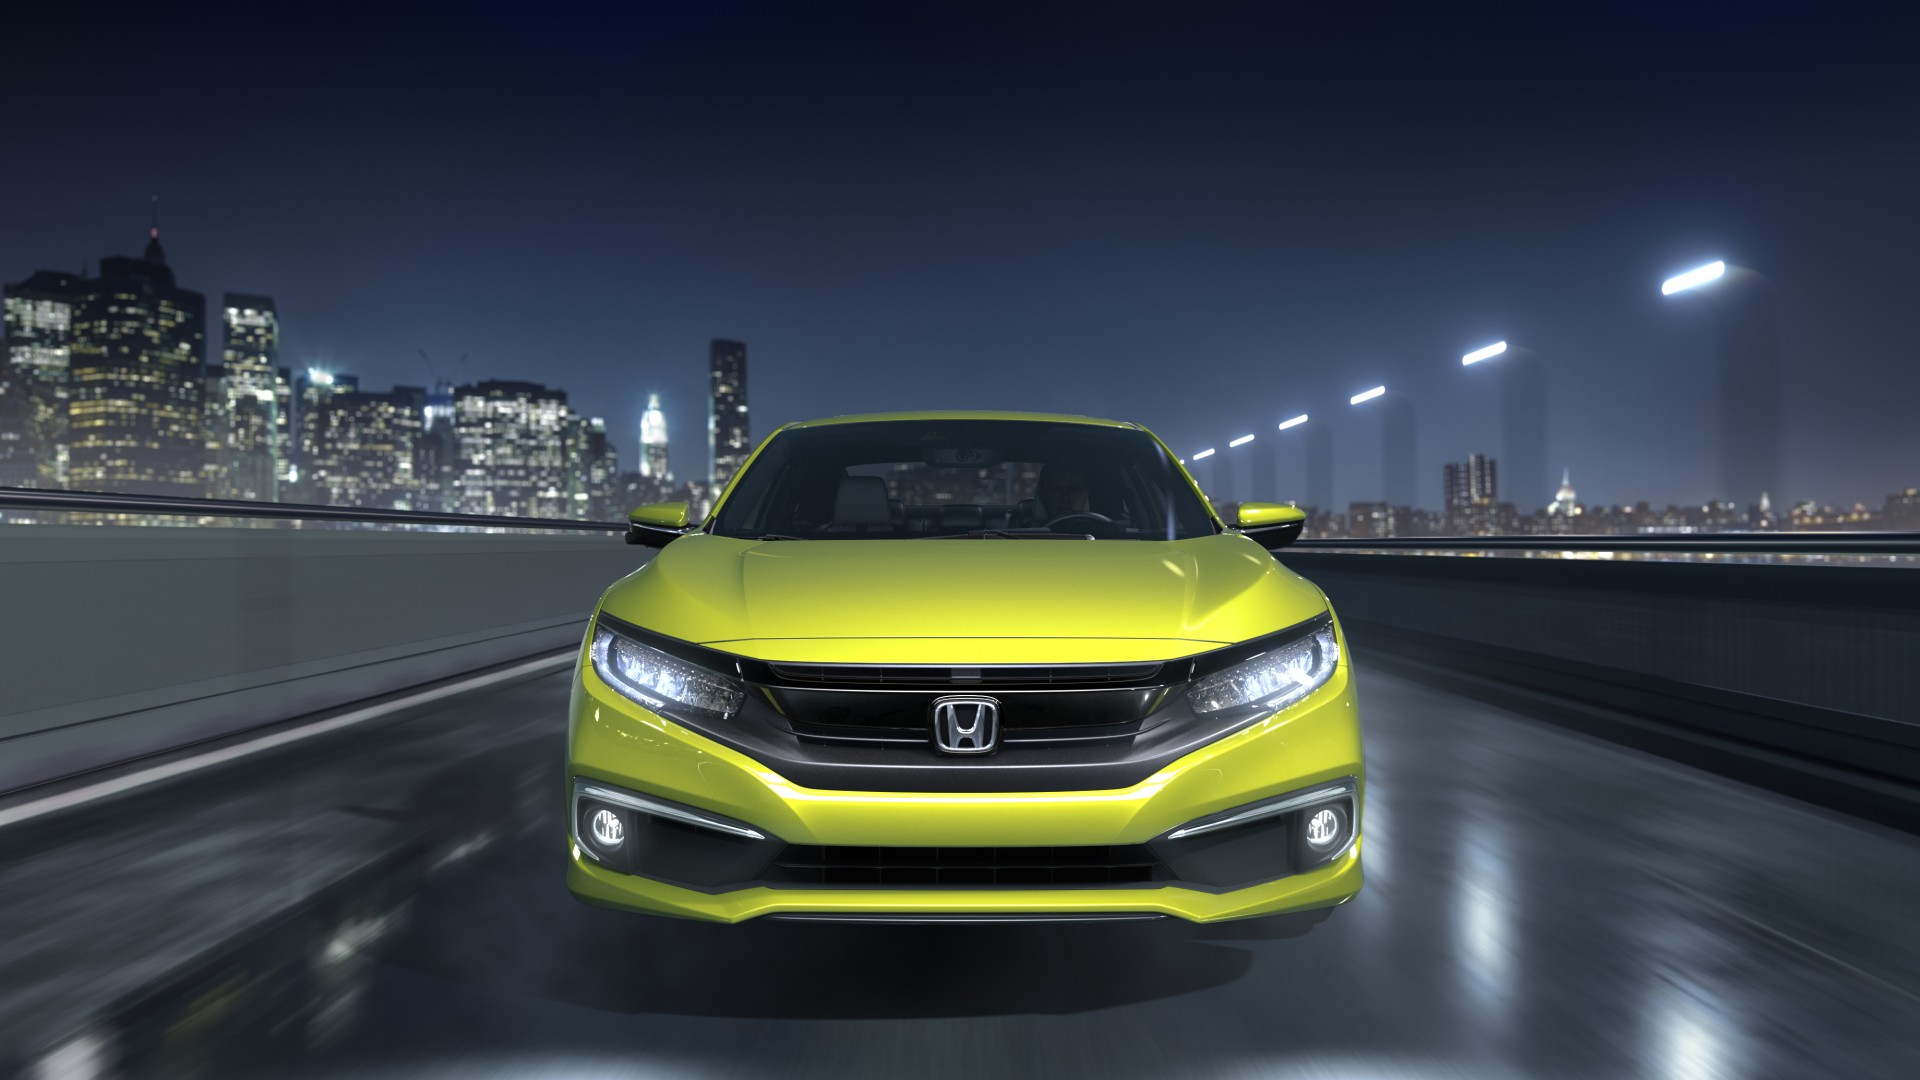 Honda Civic Sport Wallpaper Iphone